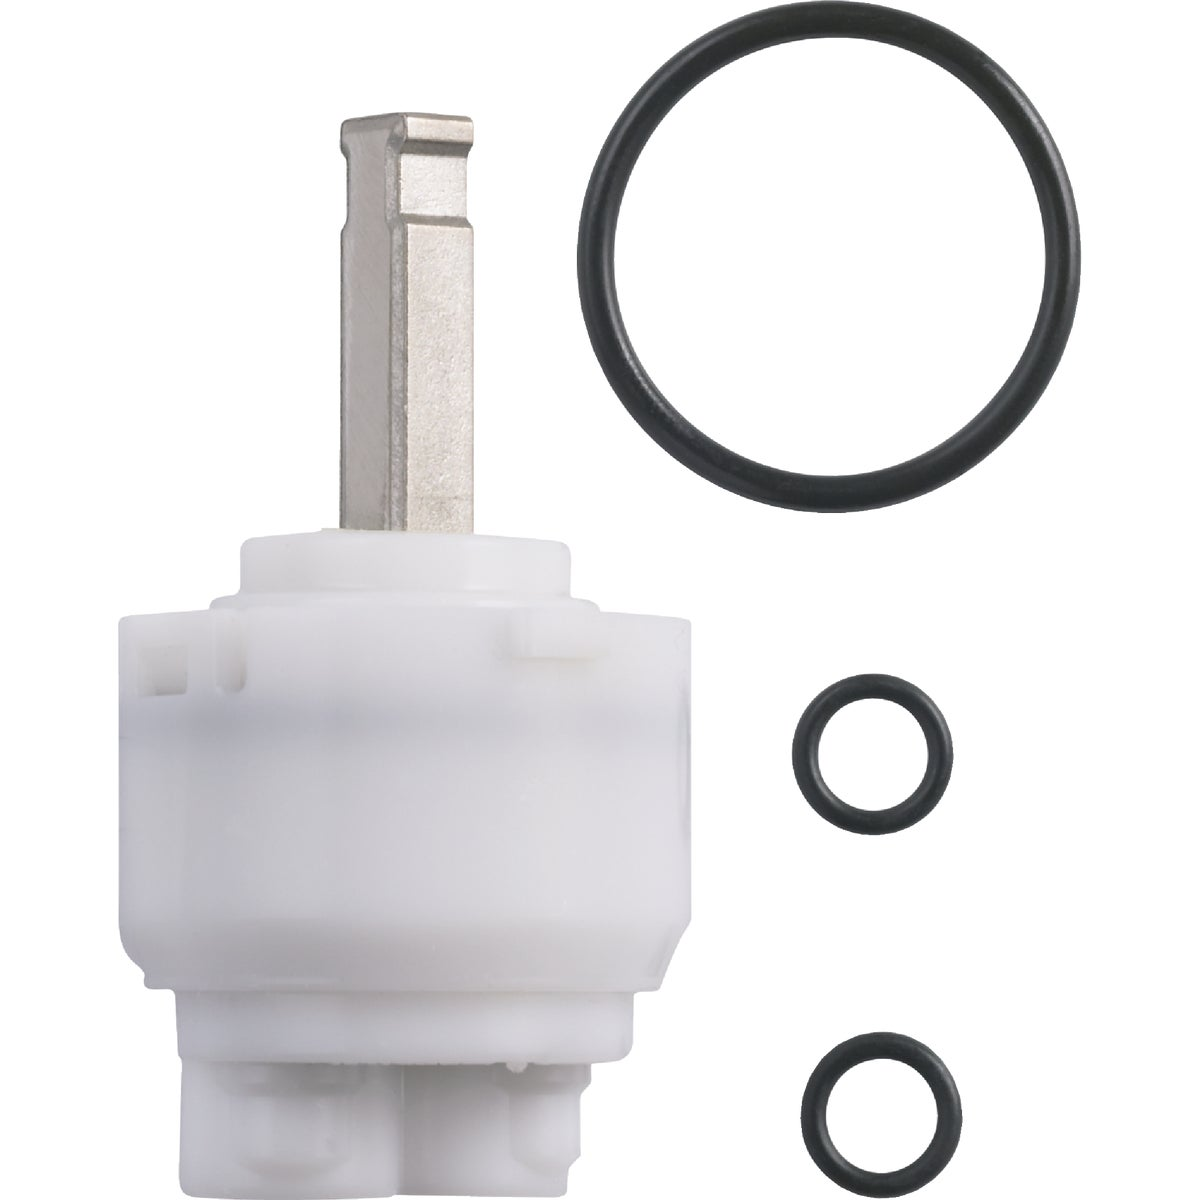 S/C VALVE REPAIR KIT - GP30413 by Kohler Co